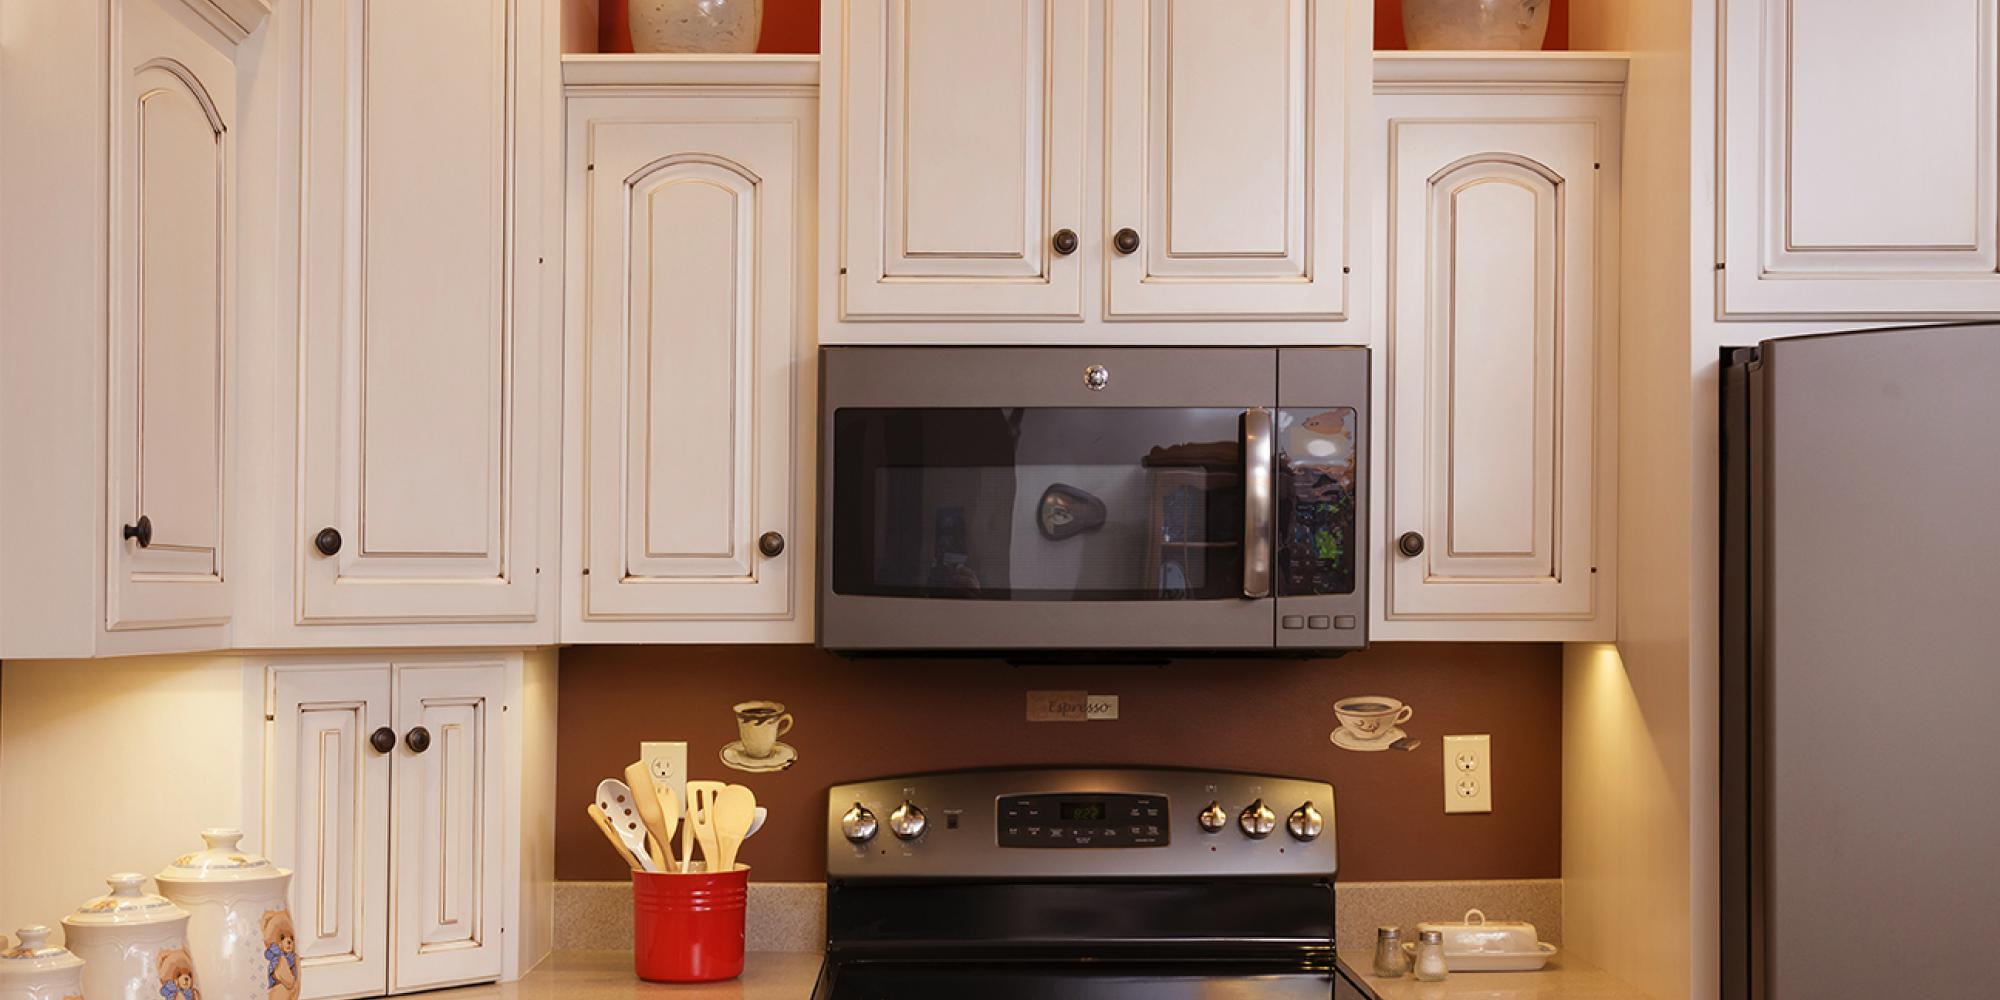 Solid wood kitchen in Liverpool, PA, showing appliance garage and cupboards installed around the microwave, color white with brown glaze